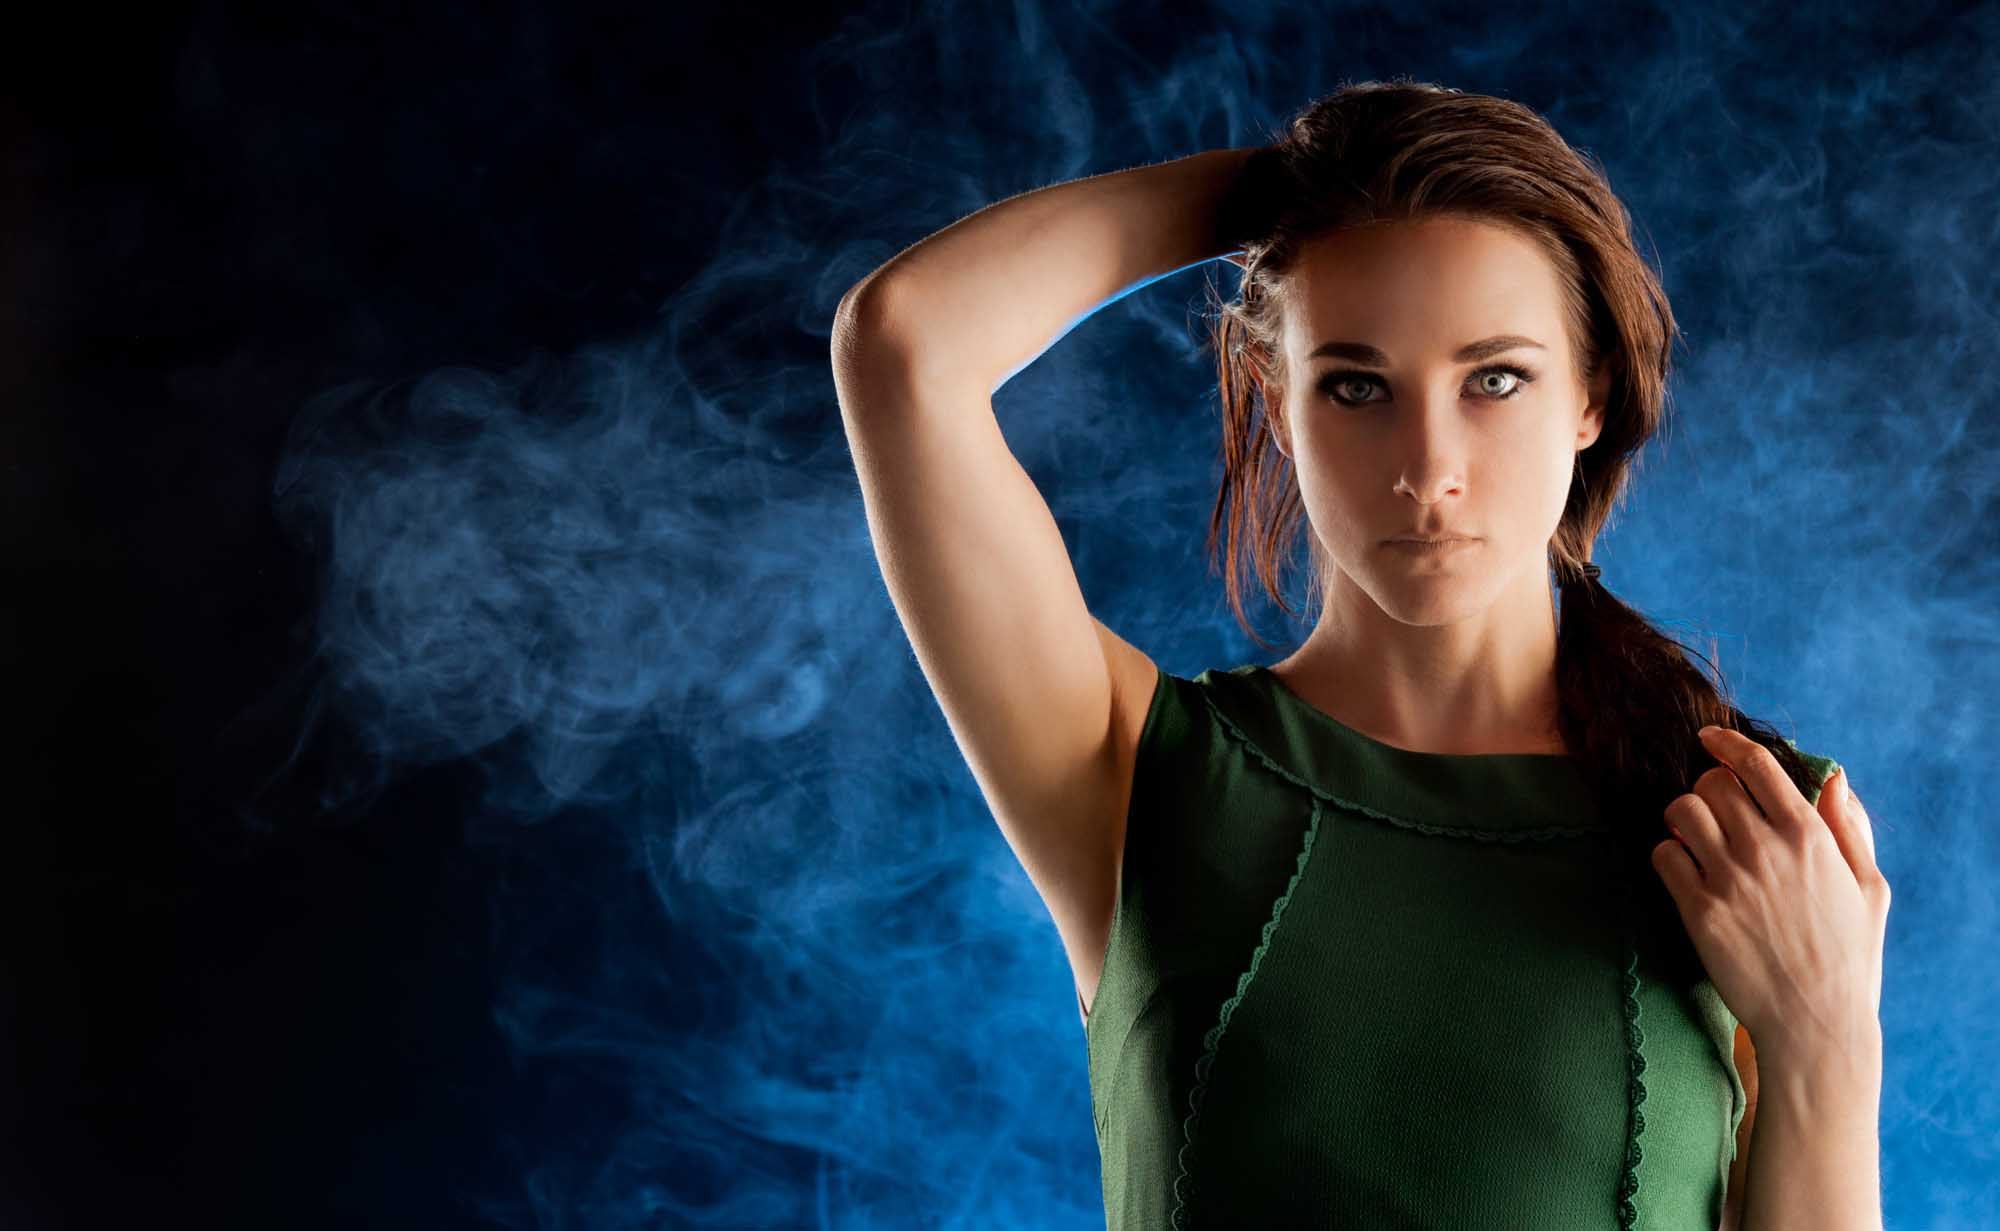 Portrait of model with dramatic lighting and smoke in background | Fashion Photography